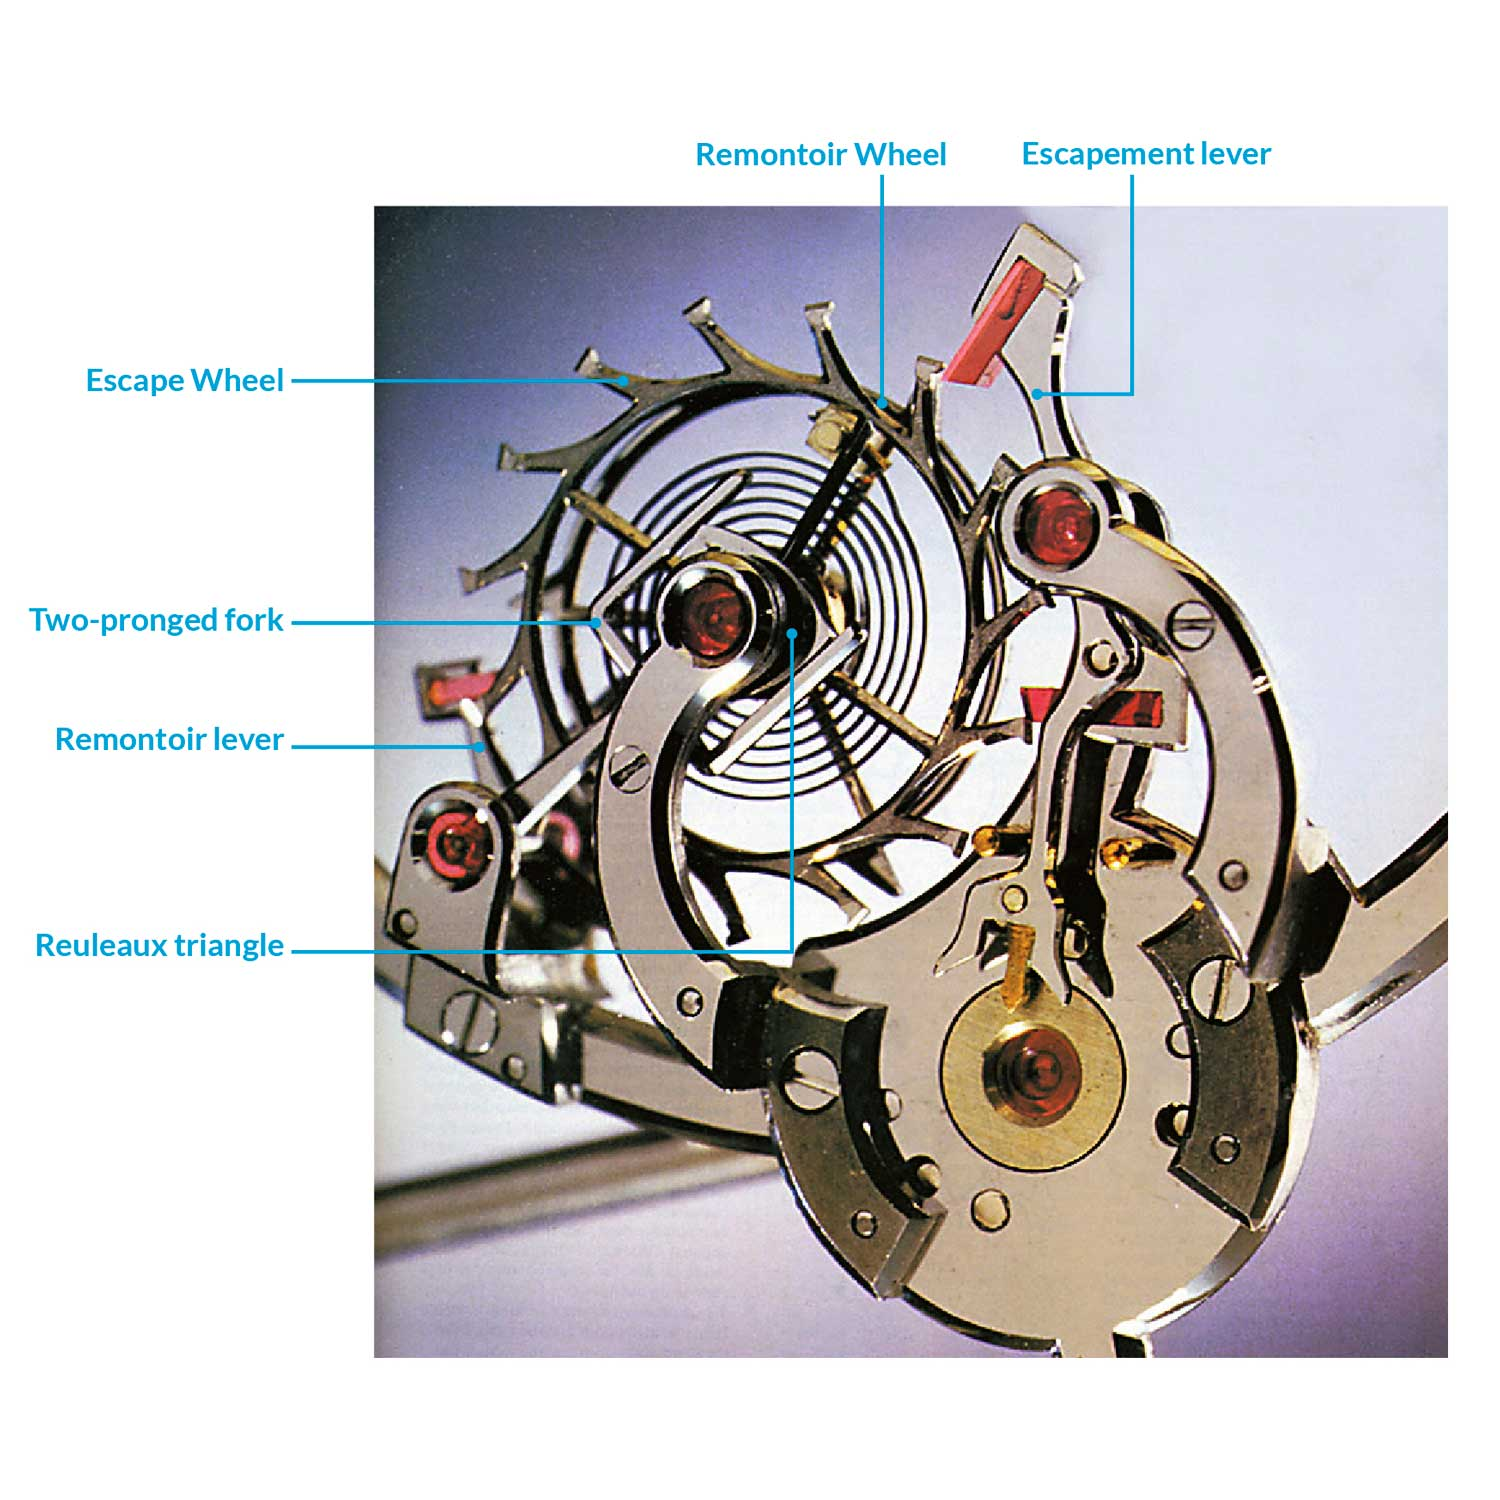 A close-up of the remontoir escapement controlled by a cam in the shape of a Reuleaux triangle